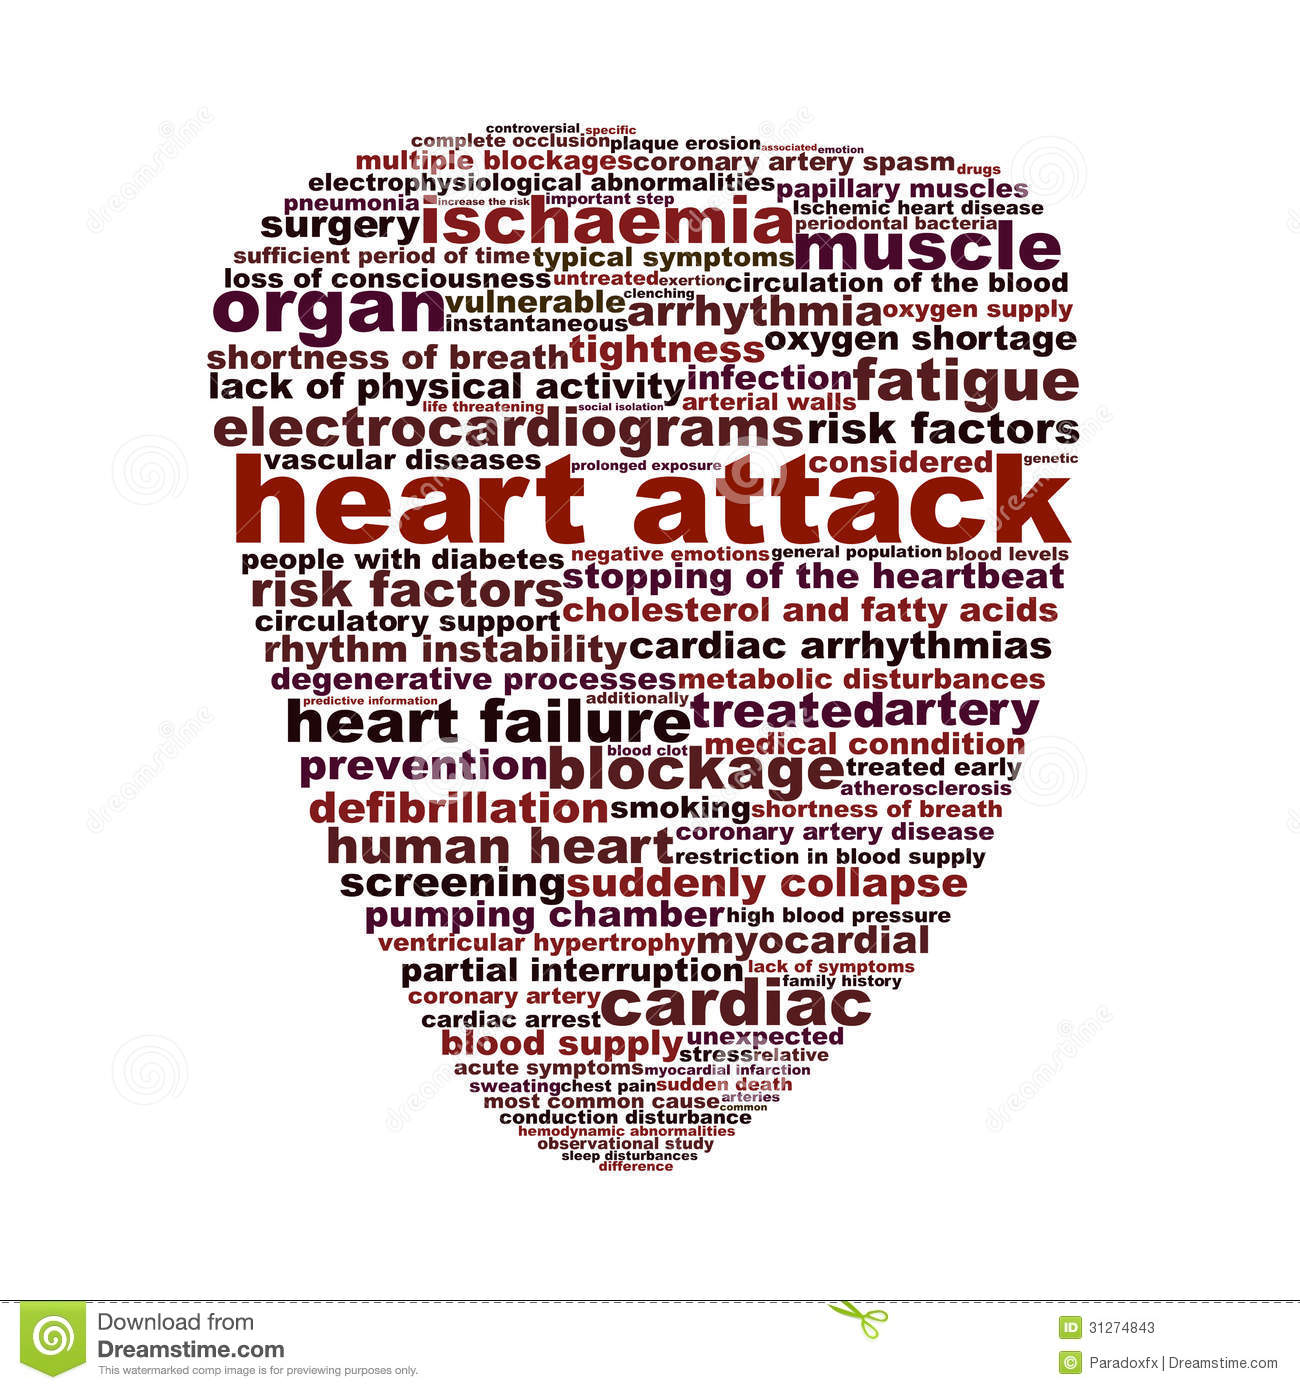 Heart Attack Medical Symbol Concept Stock Image Image Of Attack